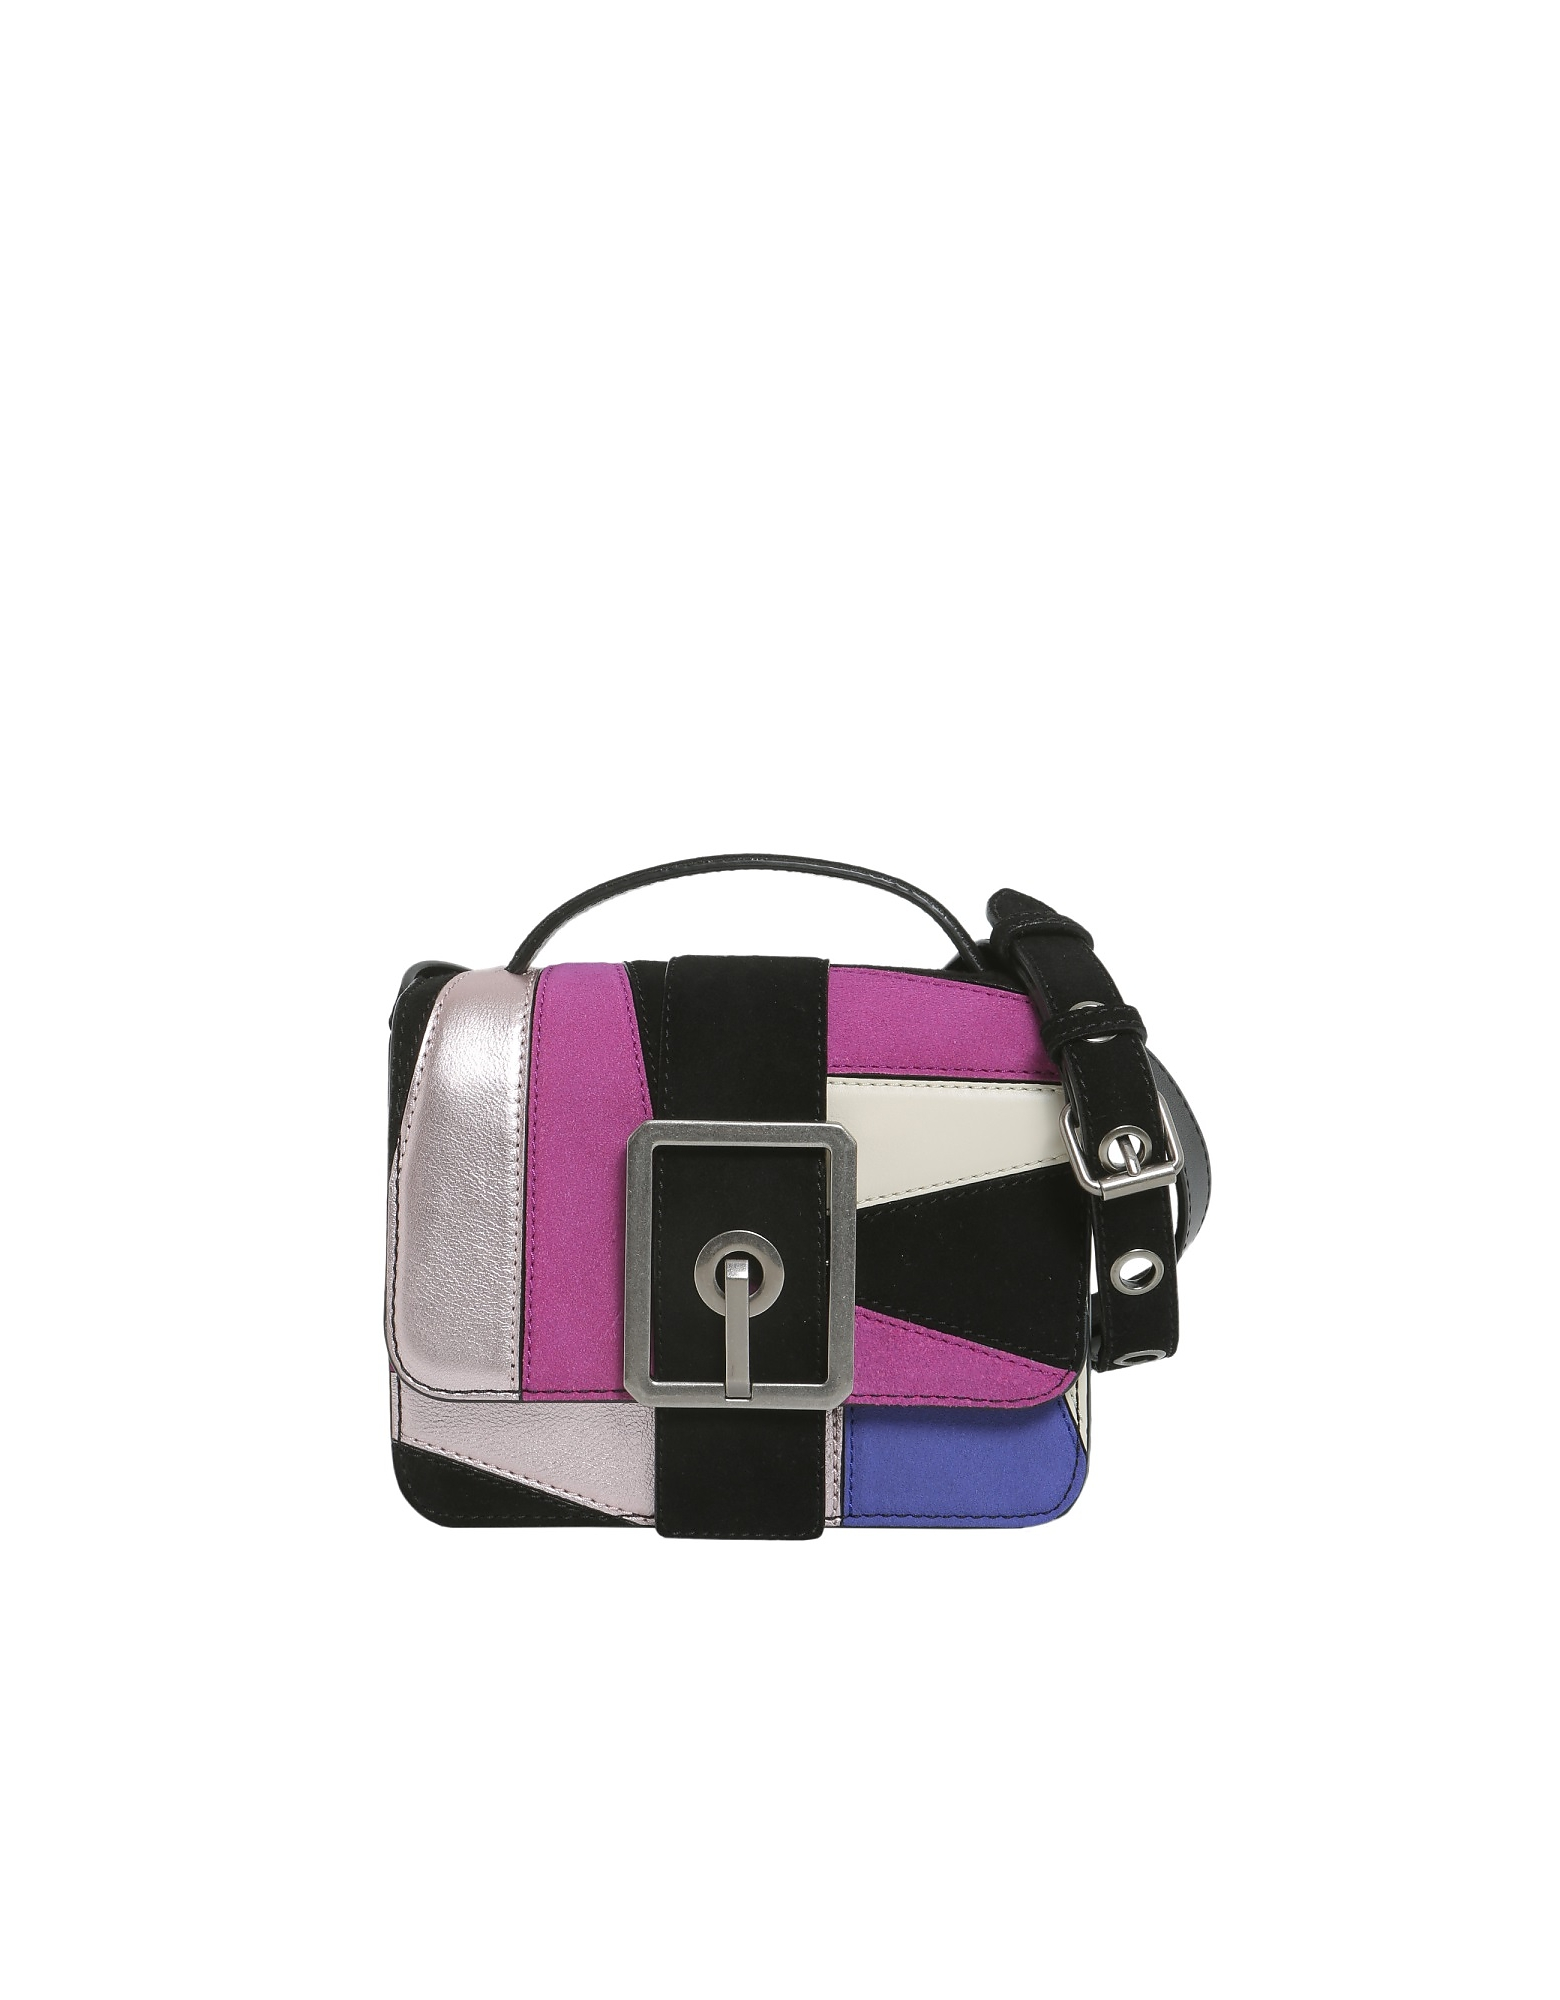 Rebecca Minkoff Designer Handbags, Hook Up Crossbody Bag